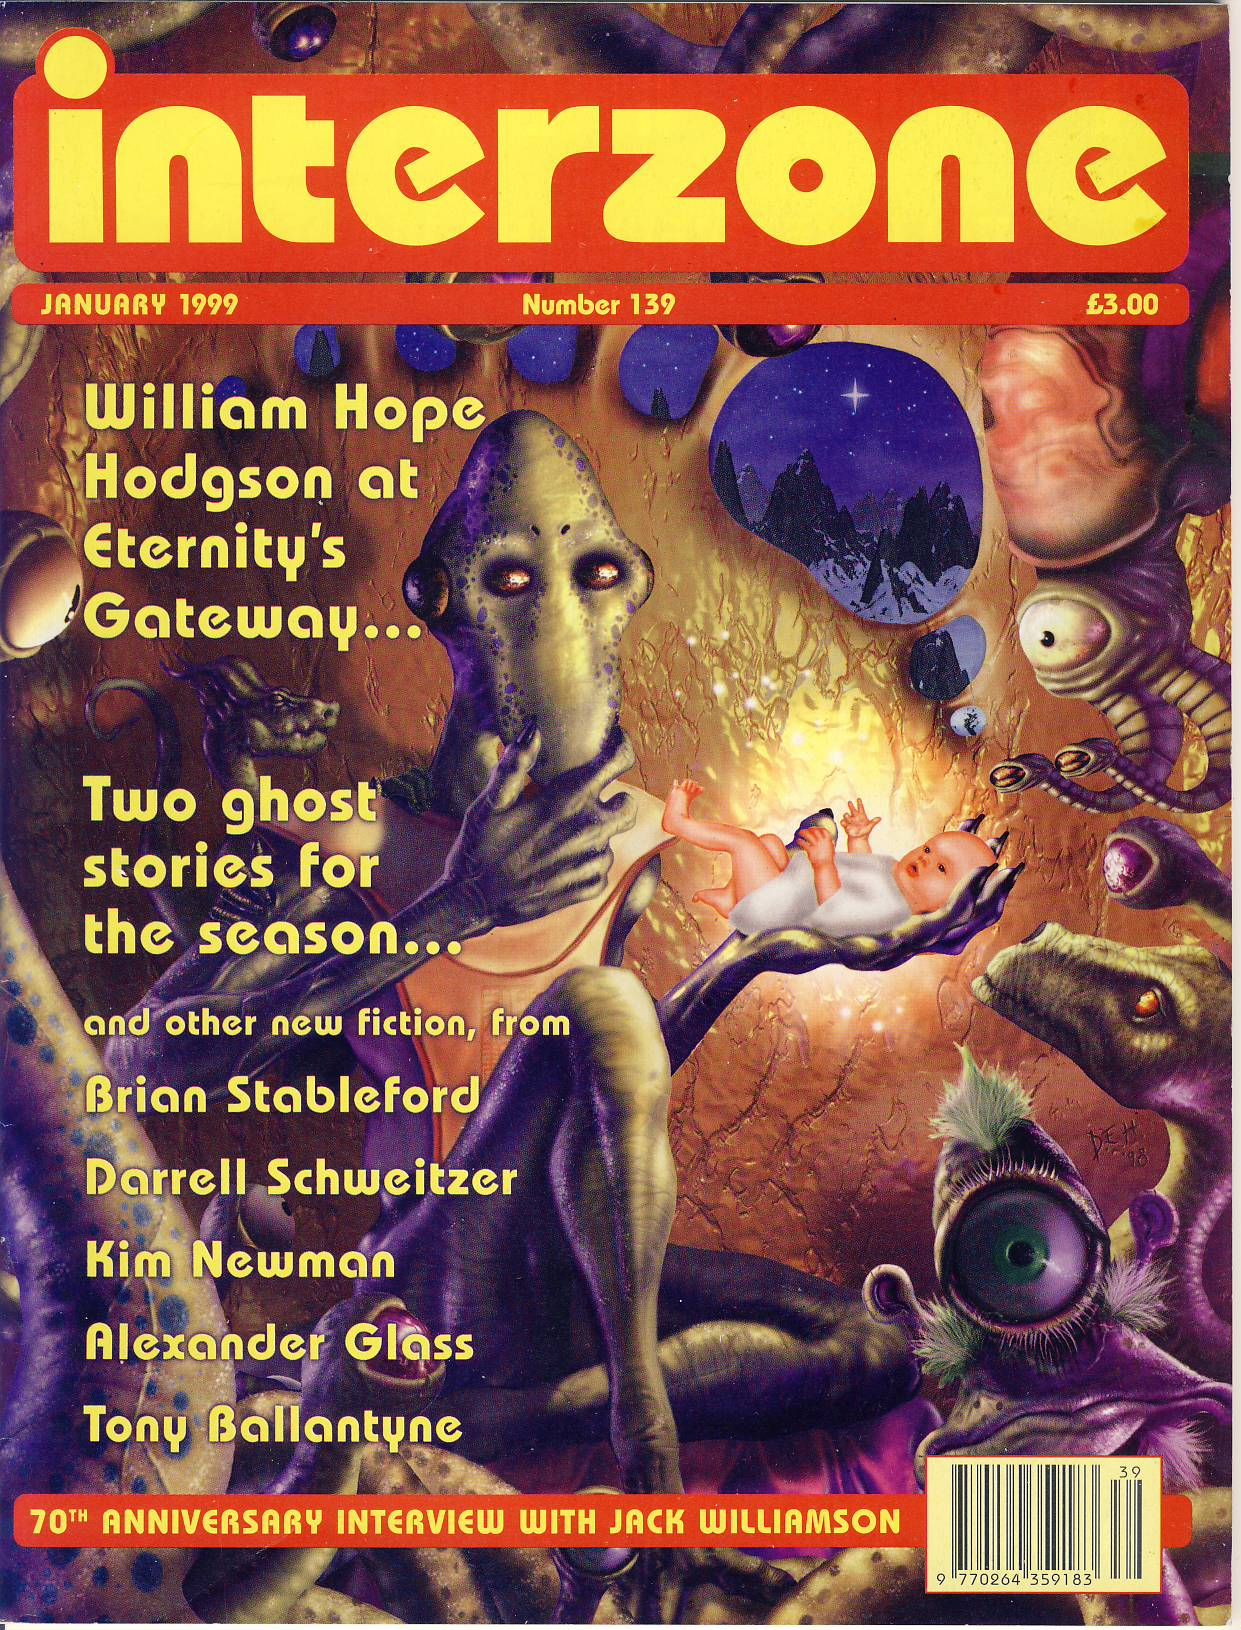 INTERZONE Science Fiction Fantasy January 1999 No 139 magazine ref101750 a pre-owned 68 page magazine in very good condition.